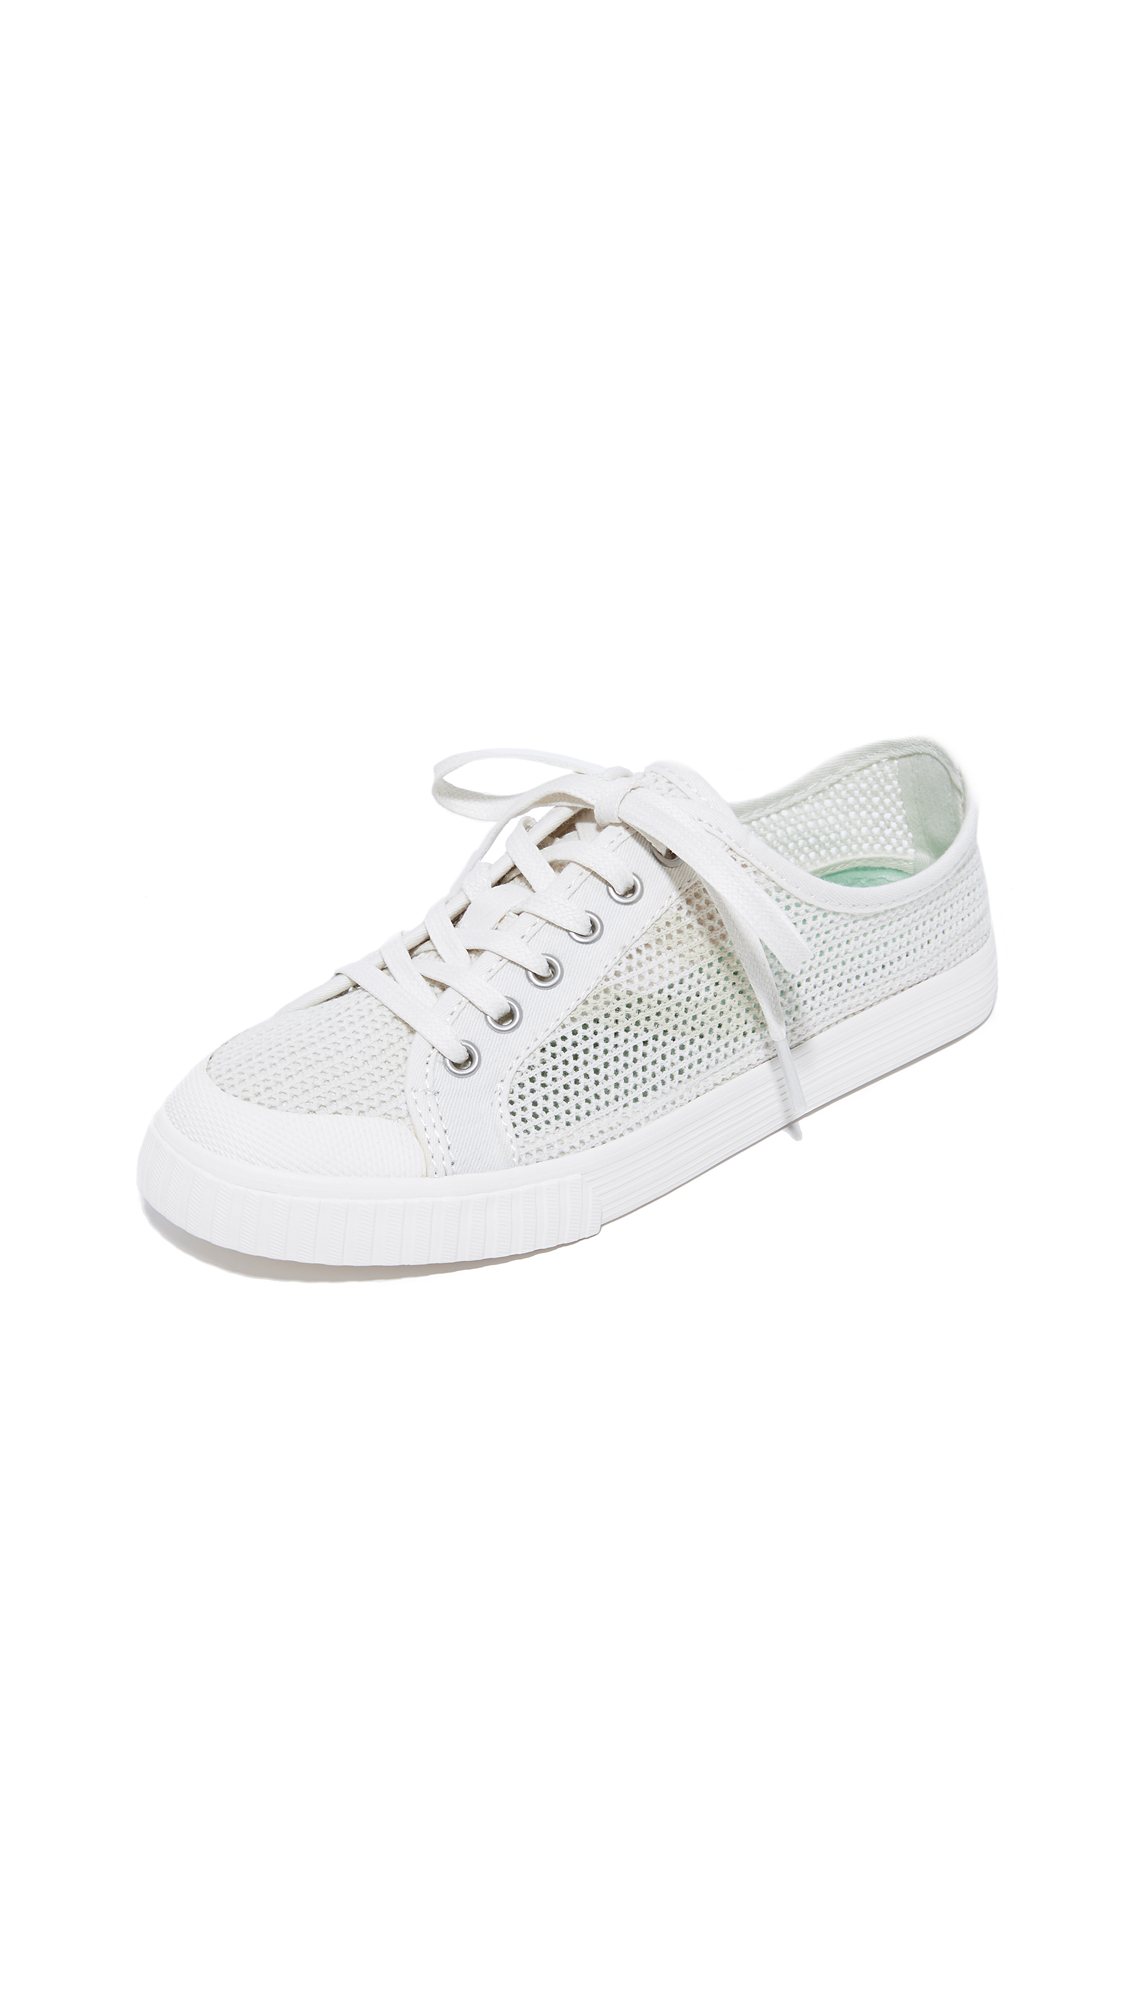 Tretorn Tournament Net Sneakers - Vintage White